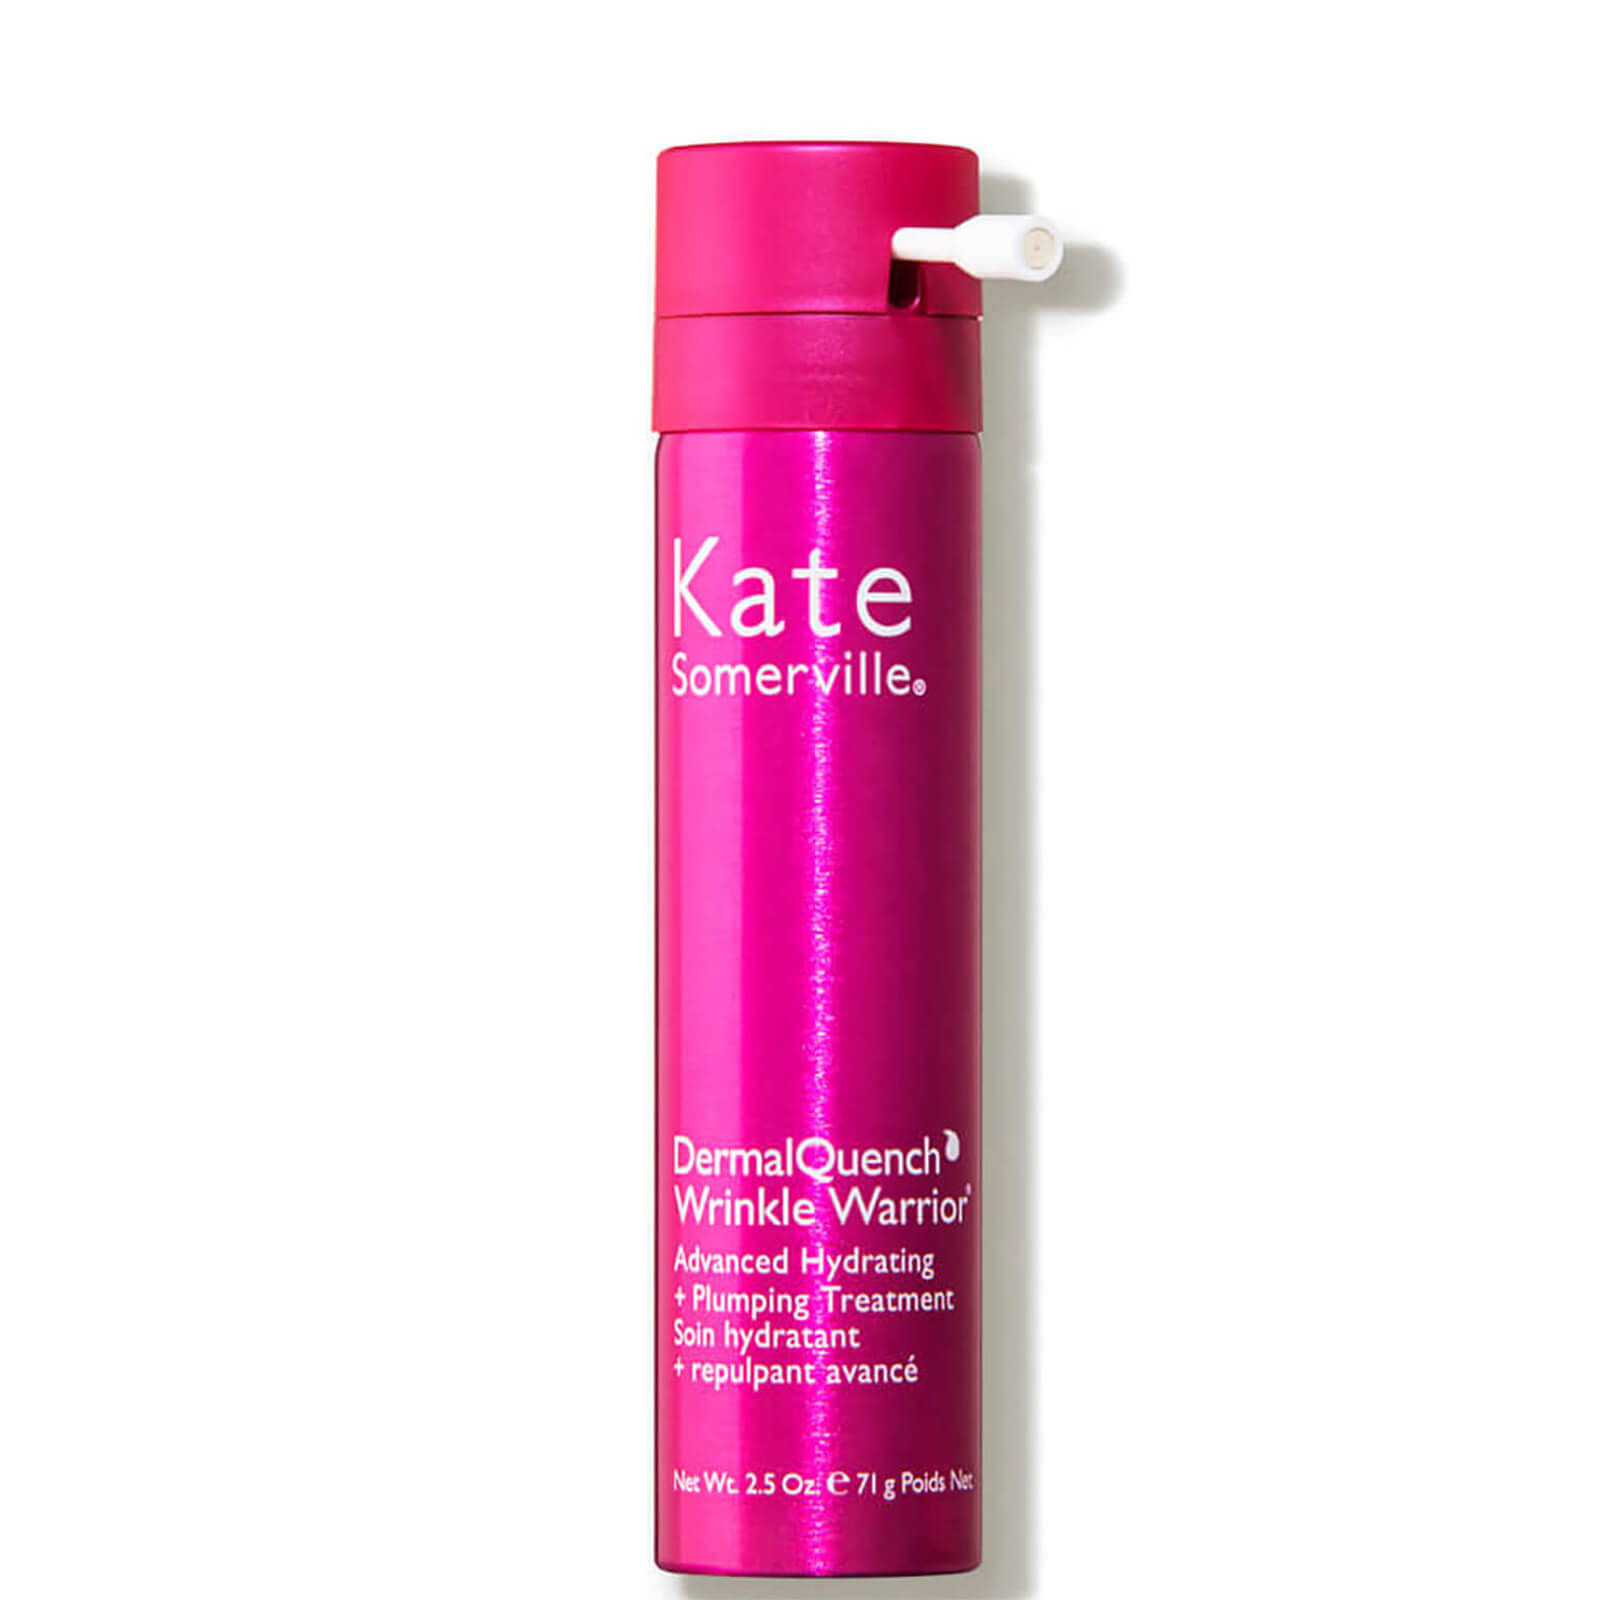 Kate Somerville Dermalquench Wrinkle Warrior Advanced Hydrating Plumping Treatment (2.5 Fl. Oz.)